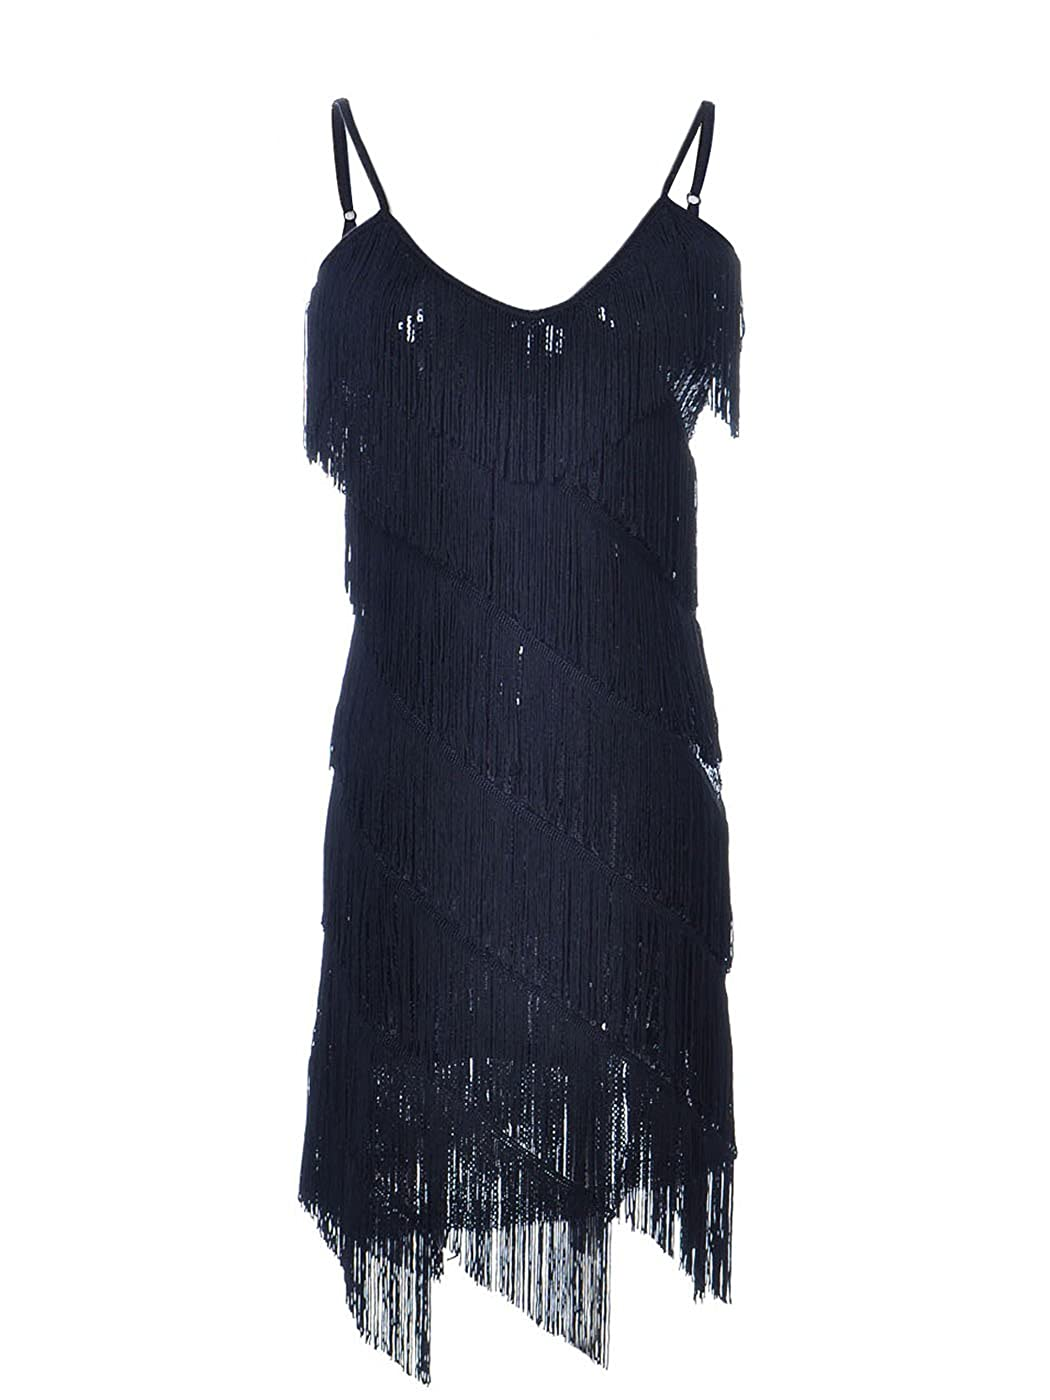 1920s Dresses UK | Flapper, Gatsby, Downton Abbey Dress Anna-Kaci Womens Fringe Sequin Strap Backless 1920s Flapper Party Mini Dress £39.99 AT vintagedancer.com